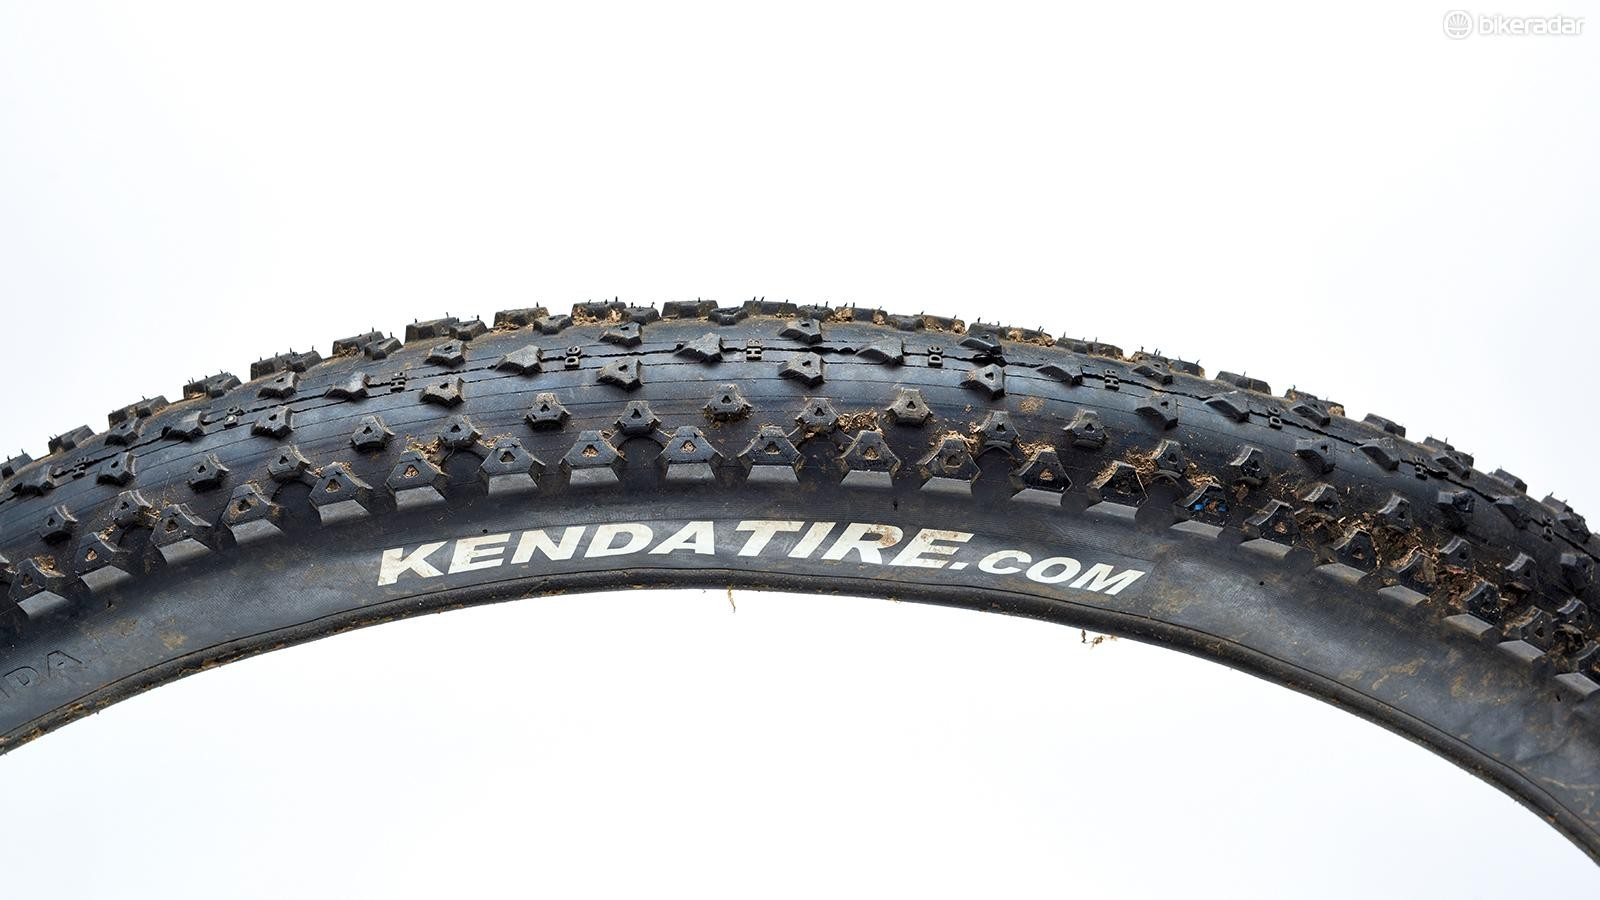 Kenda's Honey Badger Pro SCT DTC 27.5x2.2 MTB tyre can be a tricky customer